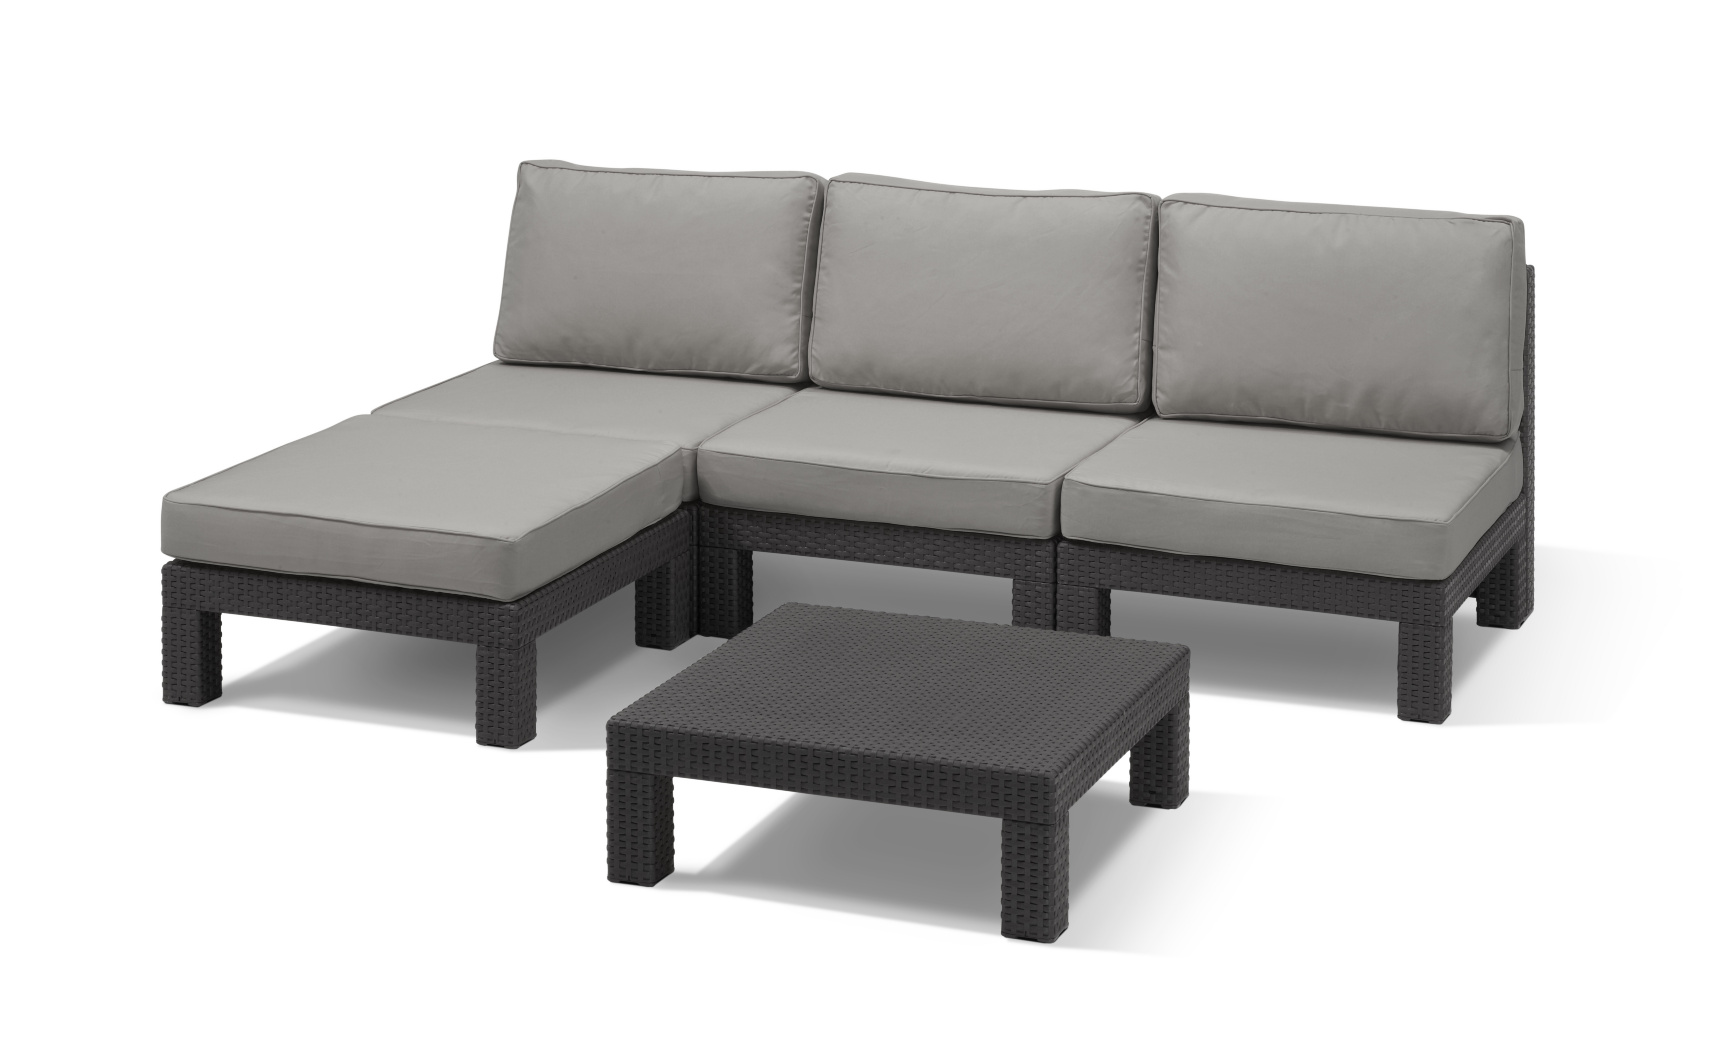 ALLIBERT Nevada lounge set graphite - Allibert